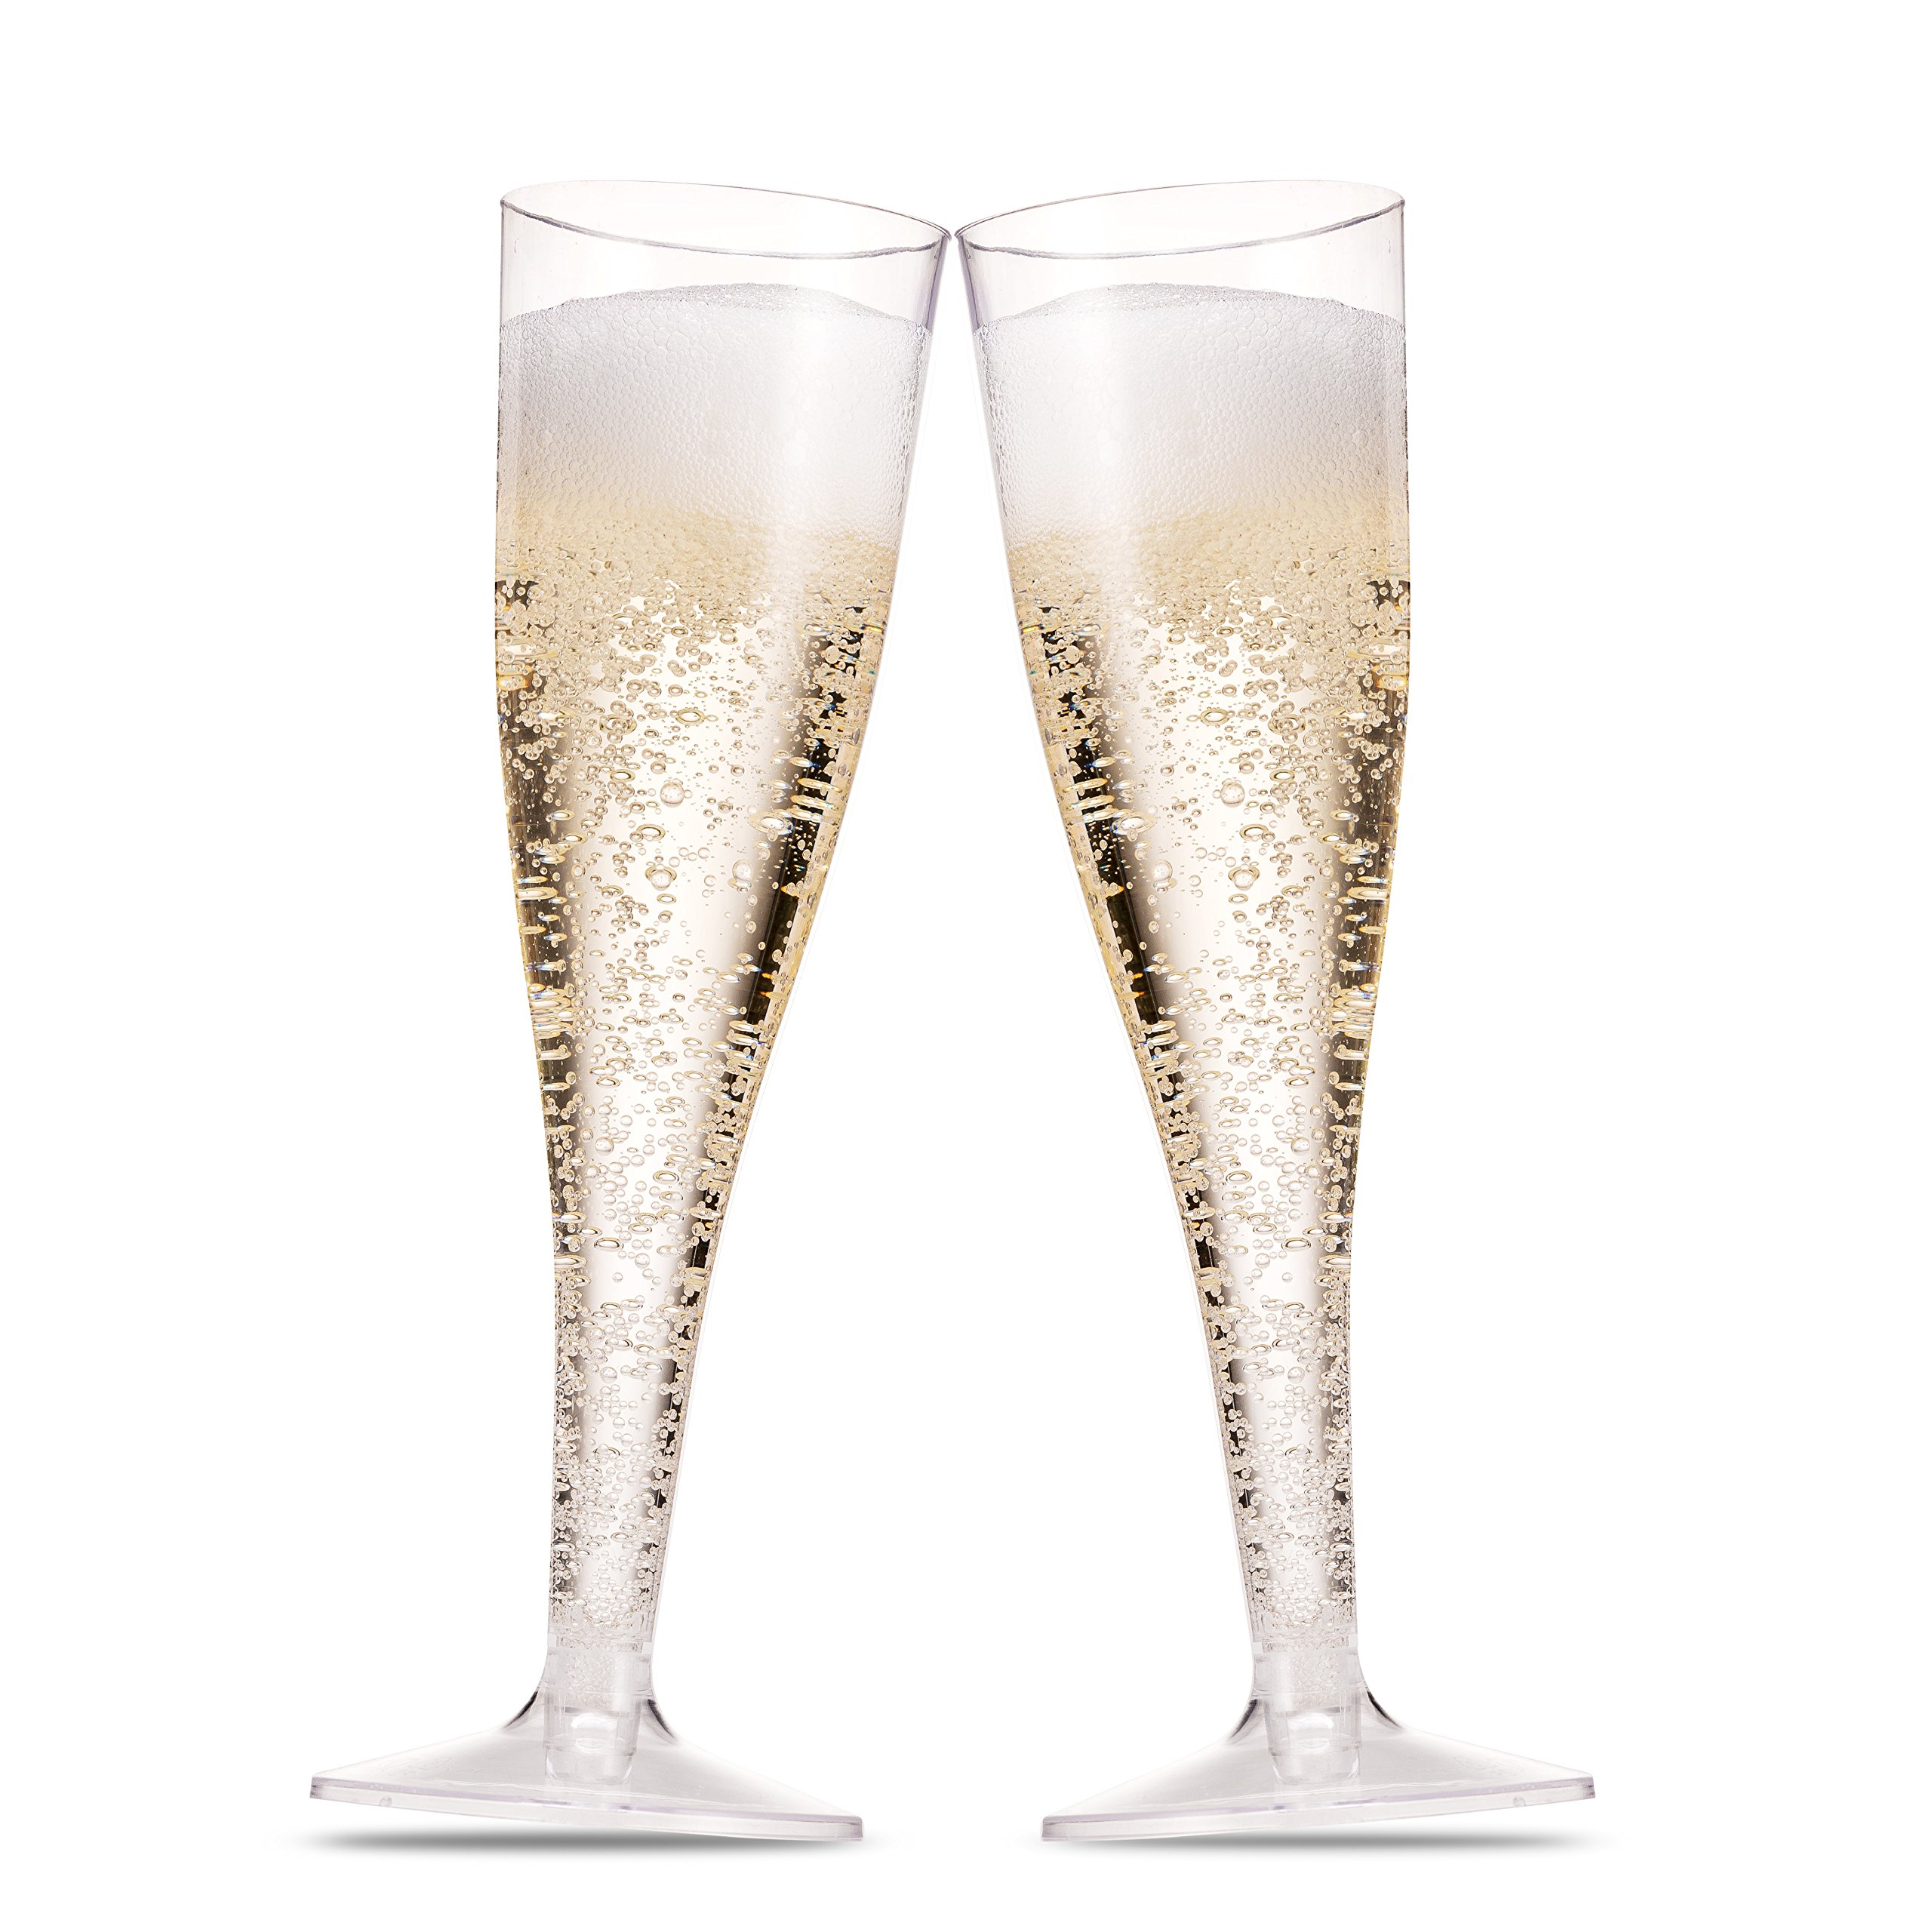 f2630036e51 50 Plastic Champagne Flutes ~ 5 Oz Clear Plastic Toasting Glasses ~  Disposable Wedding Party Cocktail Cups